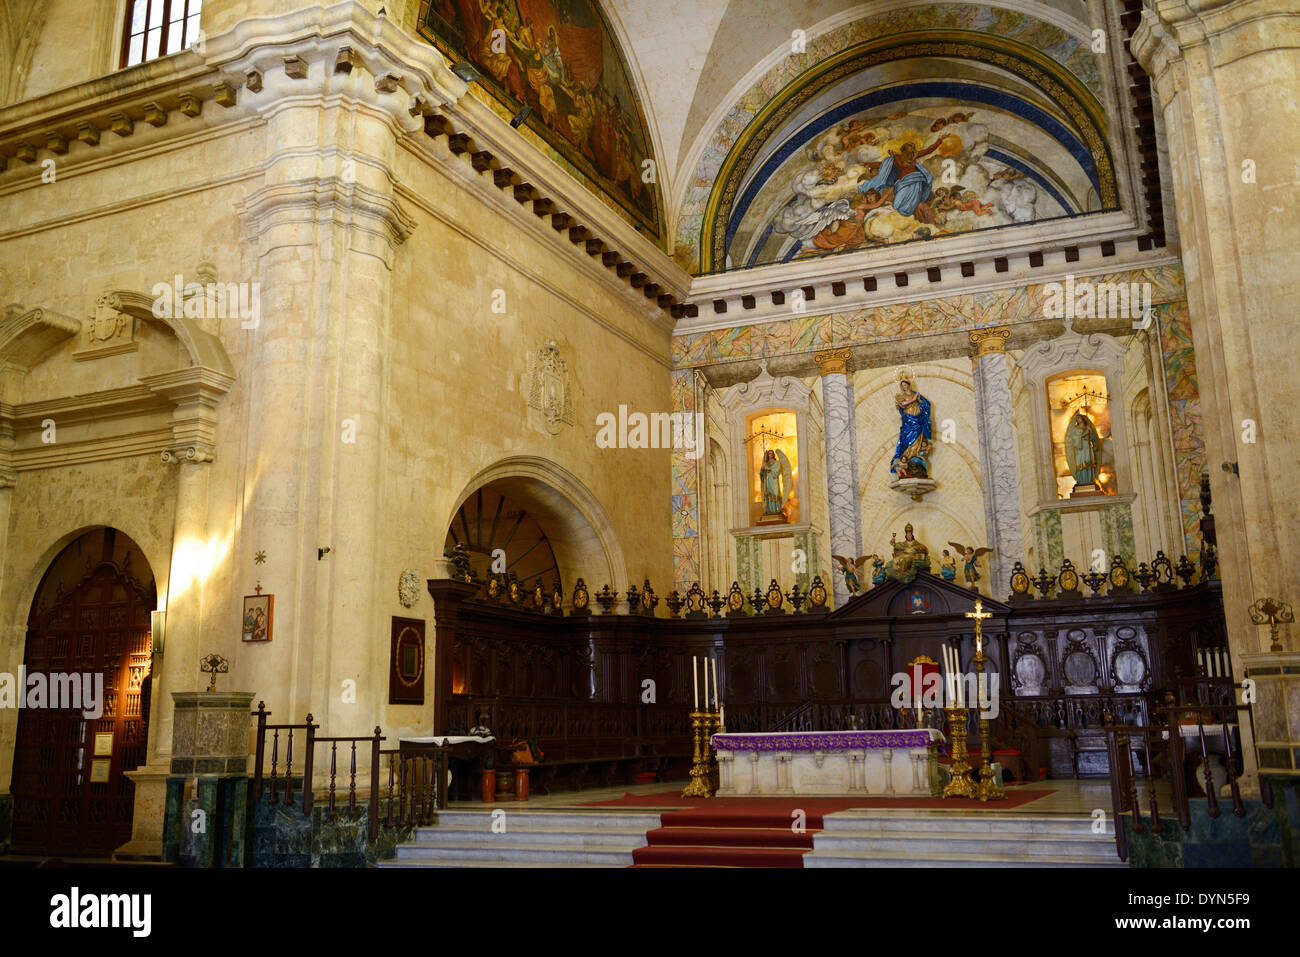 Altar sanctuary in the Havana Roman Catholic Cathedral with the Virgin Mary of the Immaculate Conception Cuba - Stock Image